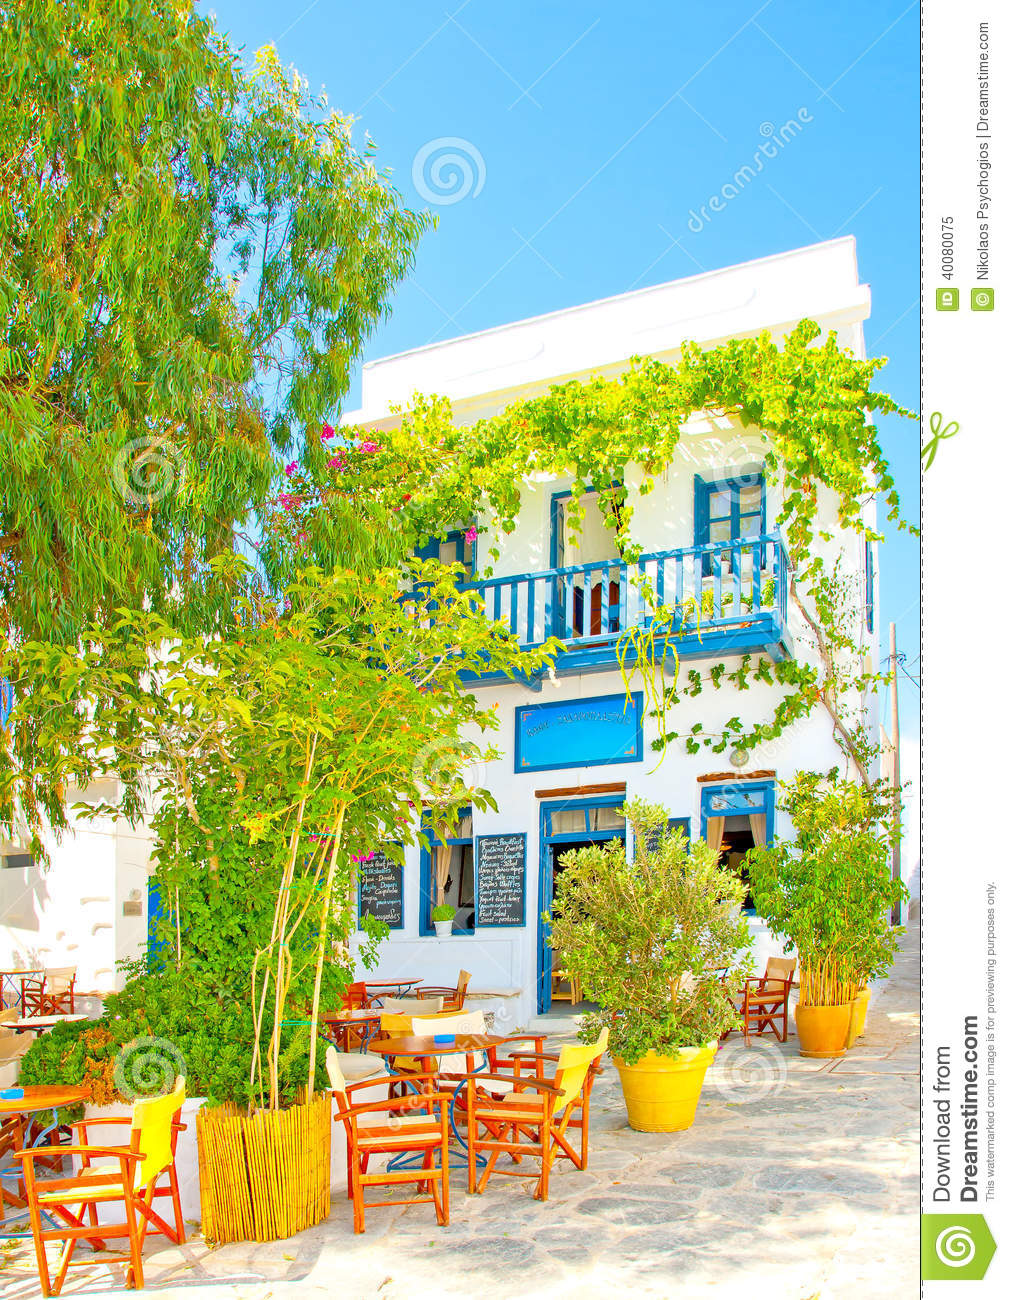 Old beautiful traditional house in chora the capital of amorgos island - Nice Square Stock Photo Amorgos Beautiful Greece House Island Old Traditional